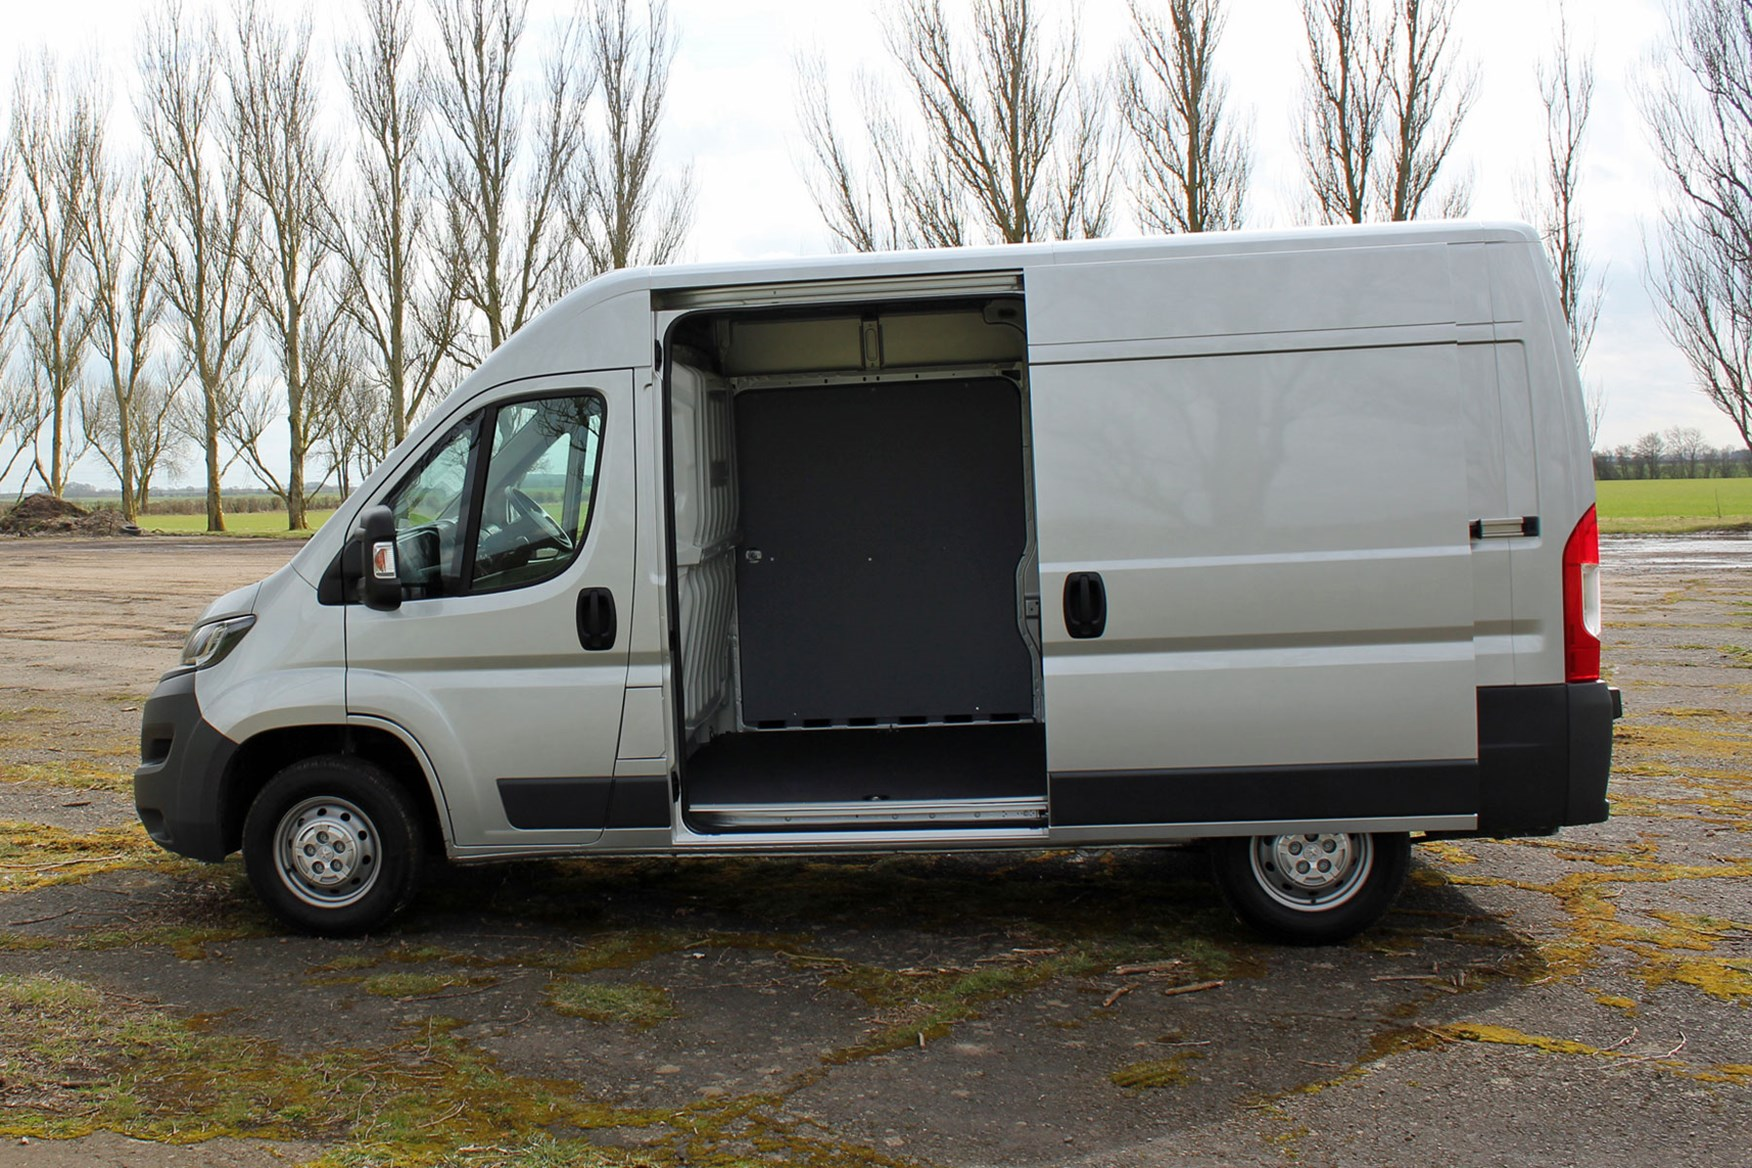 Silver 2017 Peugeot Boxer side view, door open